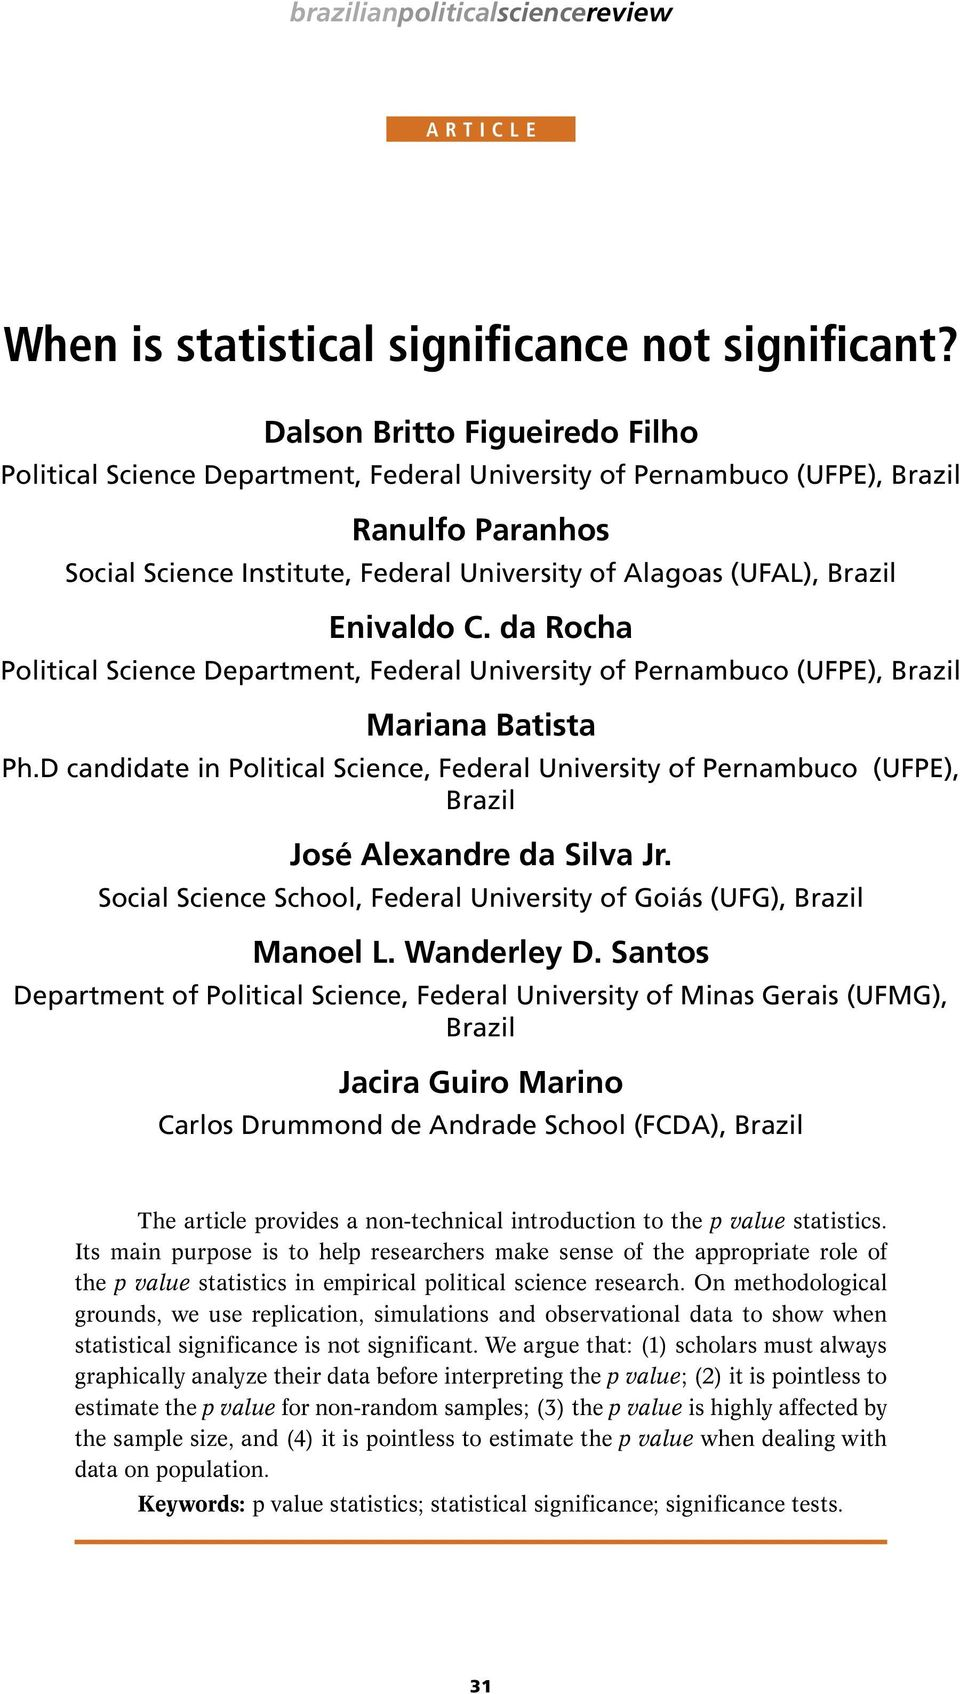 D candidate in Political Science, Federal University of Pernambuco (UFPE), Brazil José Alexandre da Silva Jr. Social Science School, Federal University of Goiás (UFG), Brazil Manoel L. Wanderley D.